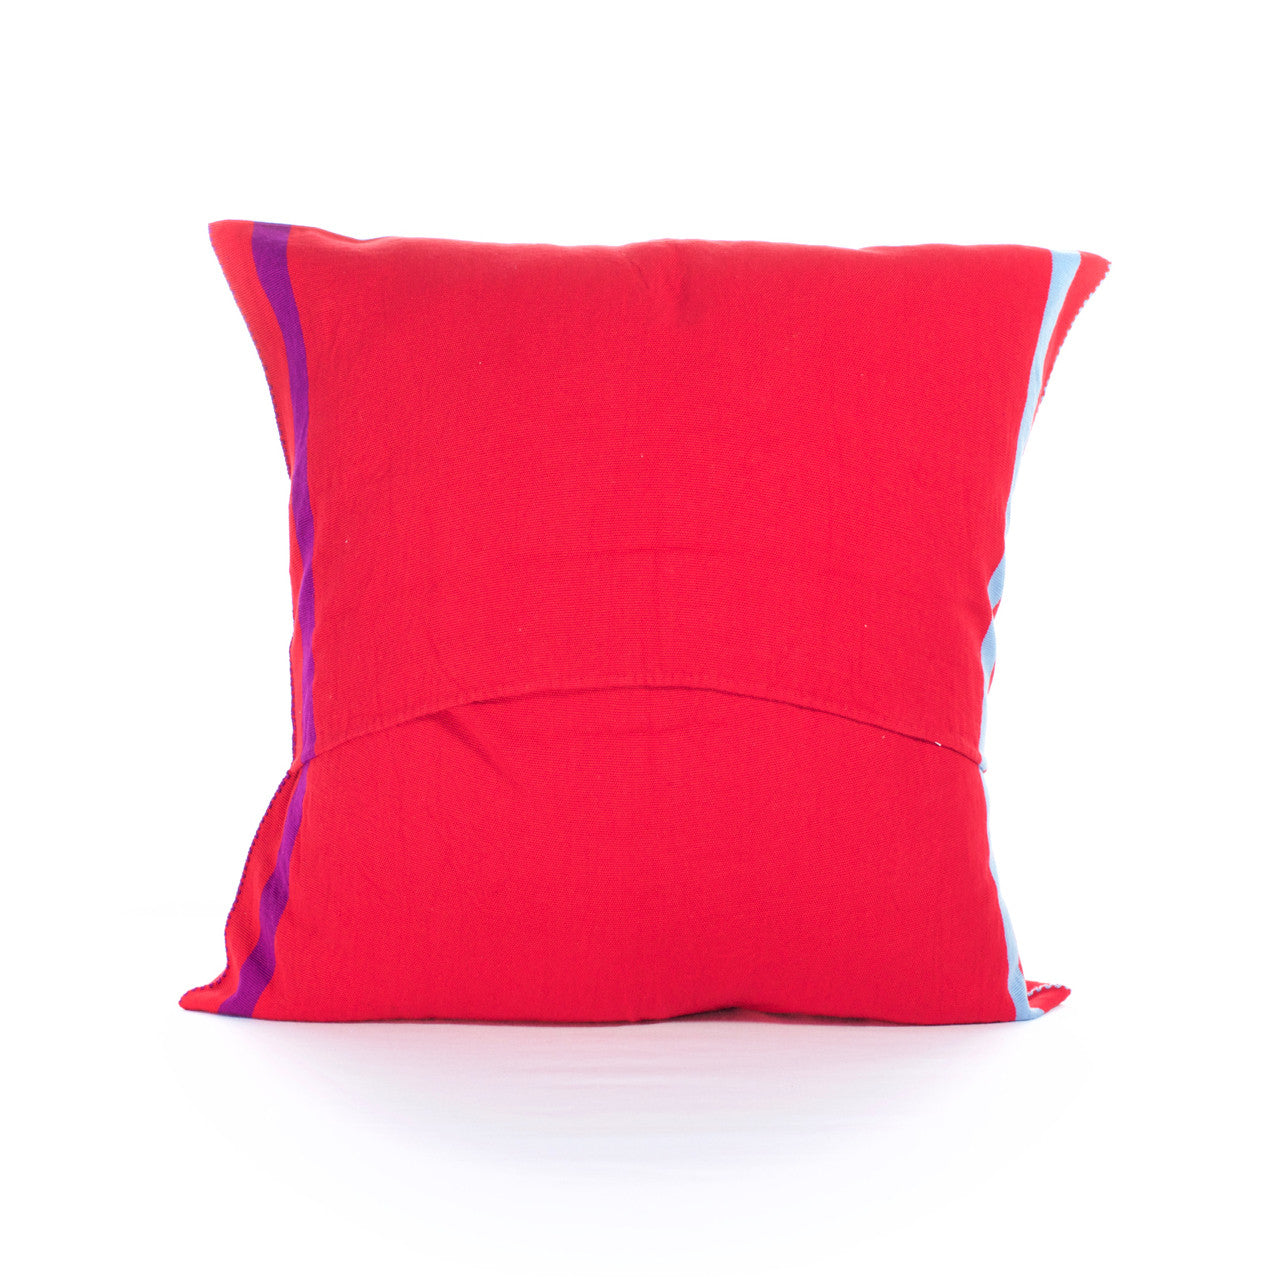 Sapo Cushion - Cielo Collective - Red with Purple & Pale Blue Stripe - 2